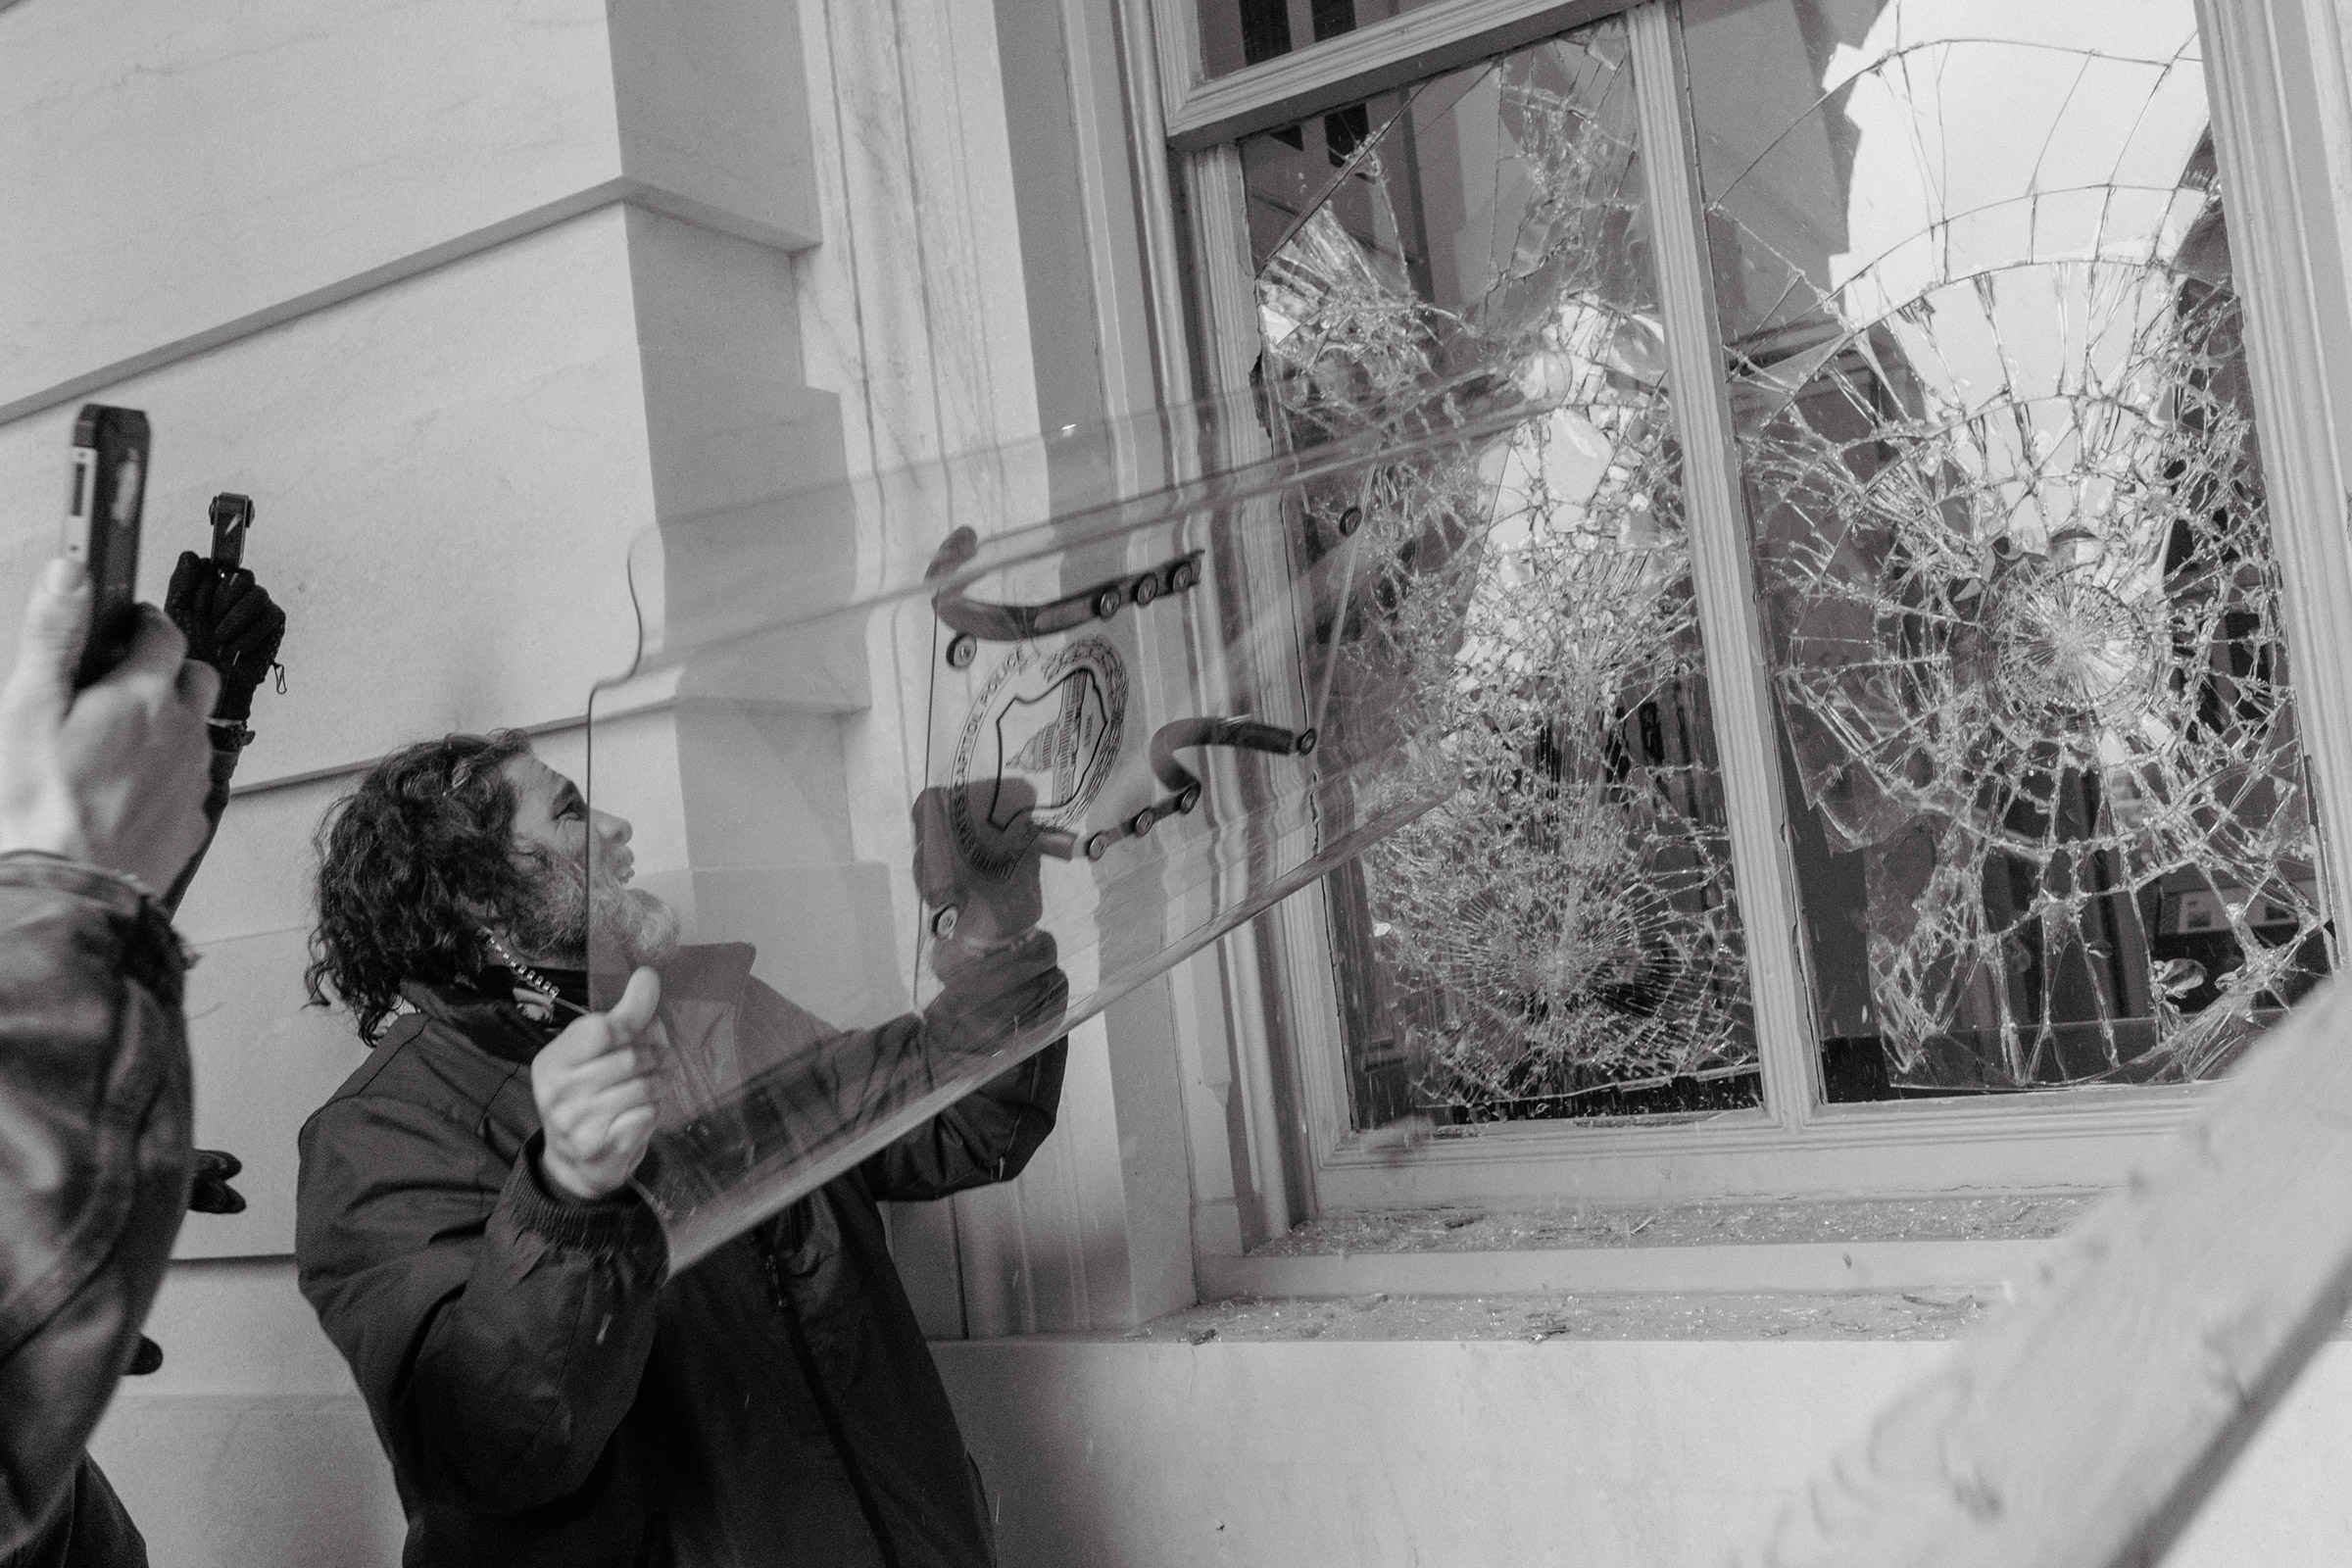 Pro-Trump rioter uses a Capitol Police shield to break through a window at the Capitol building.